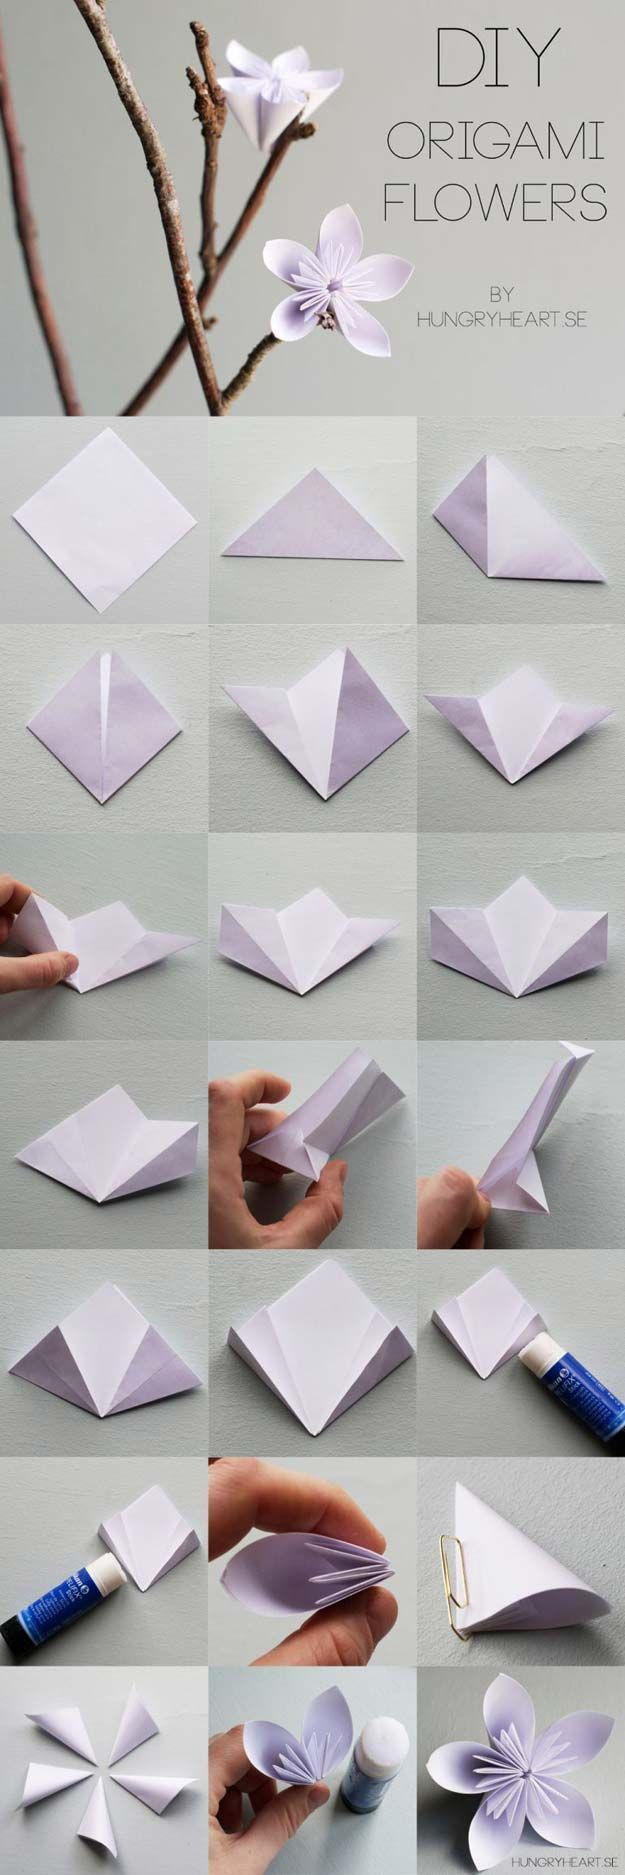 Best Origami Tutorials  Flower Origami  Easy DIY Origami Tutorial